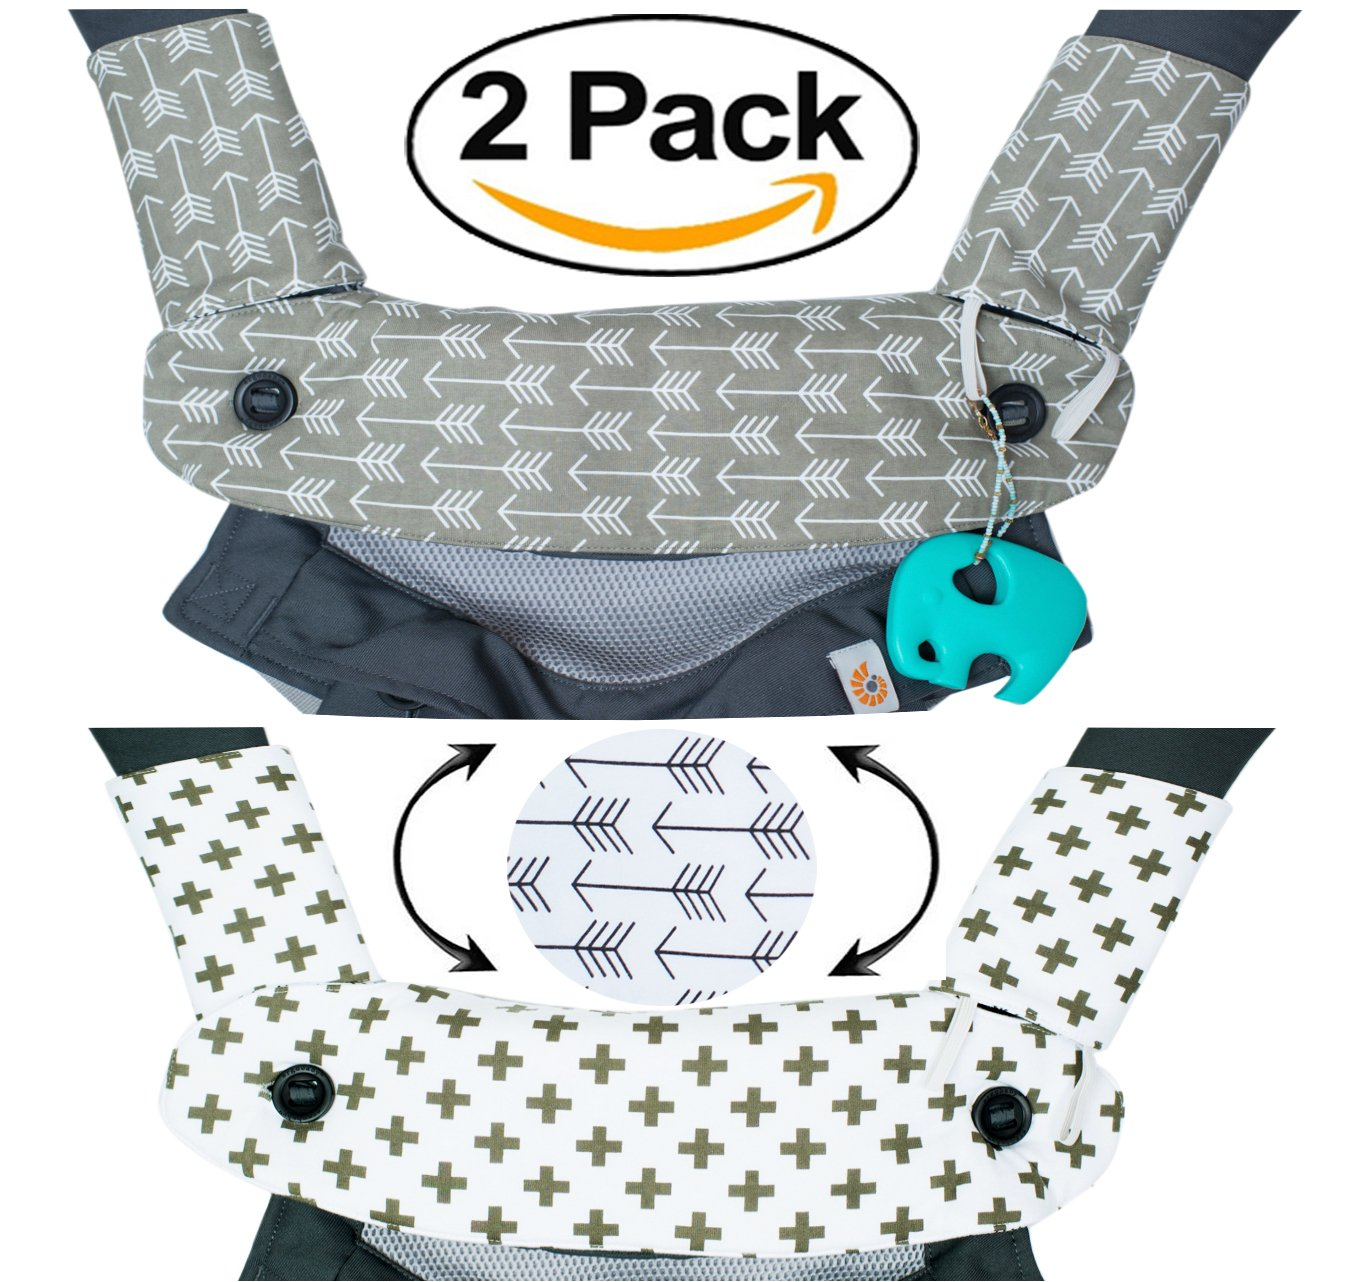 Premium Drool and Teething Reversible Cotton Pad | Fits Ergobaby Four Position 360 and Most Baby Carrier | Arrow Design | Hypoallergenic | Great Baby Shower Gift by Mila Millie (Gray Arrow)